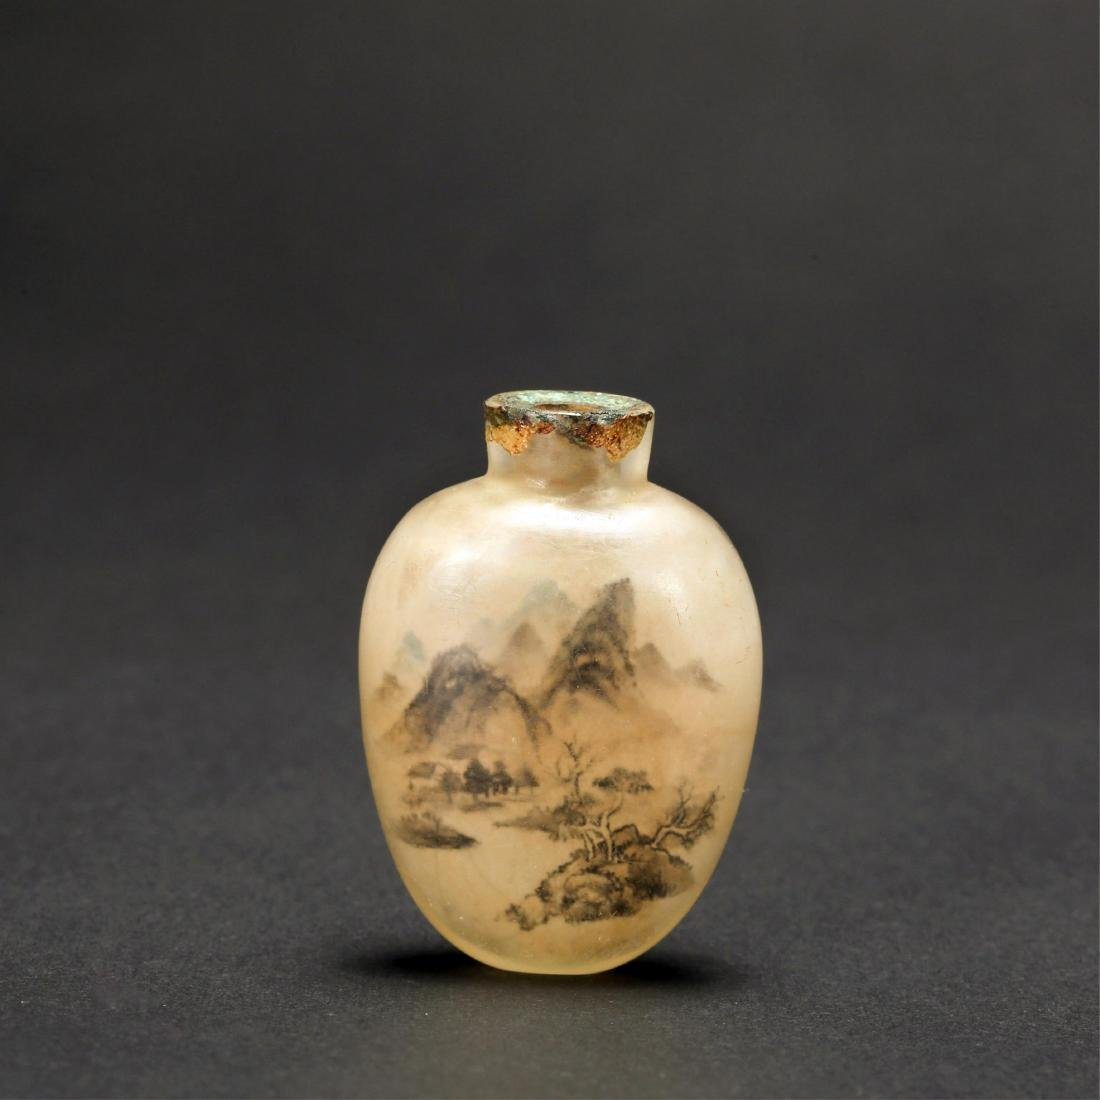 CHINESE AGATE SNUFF BOTTLE, QING DYNASTY